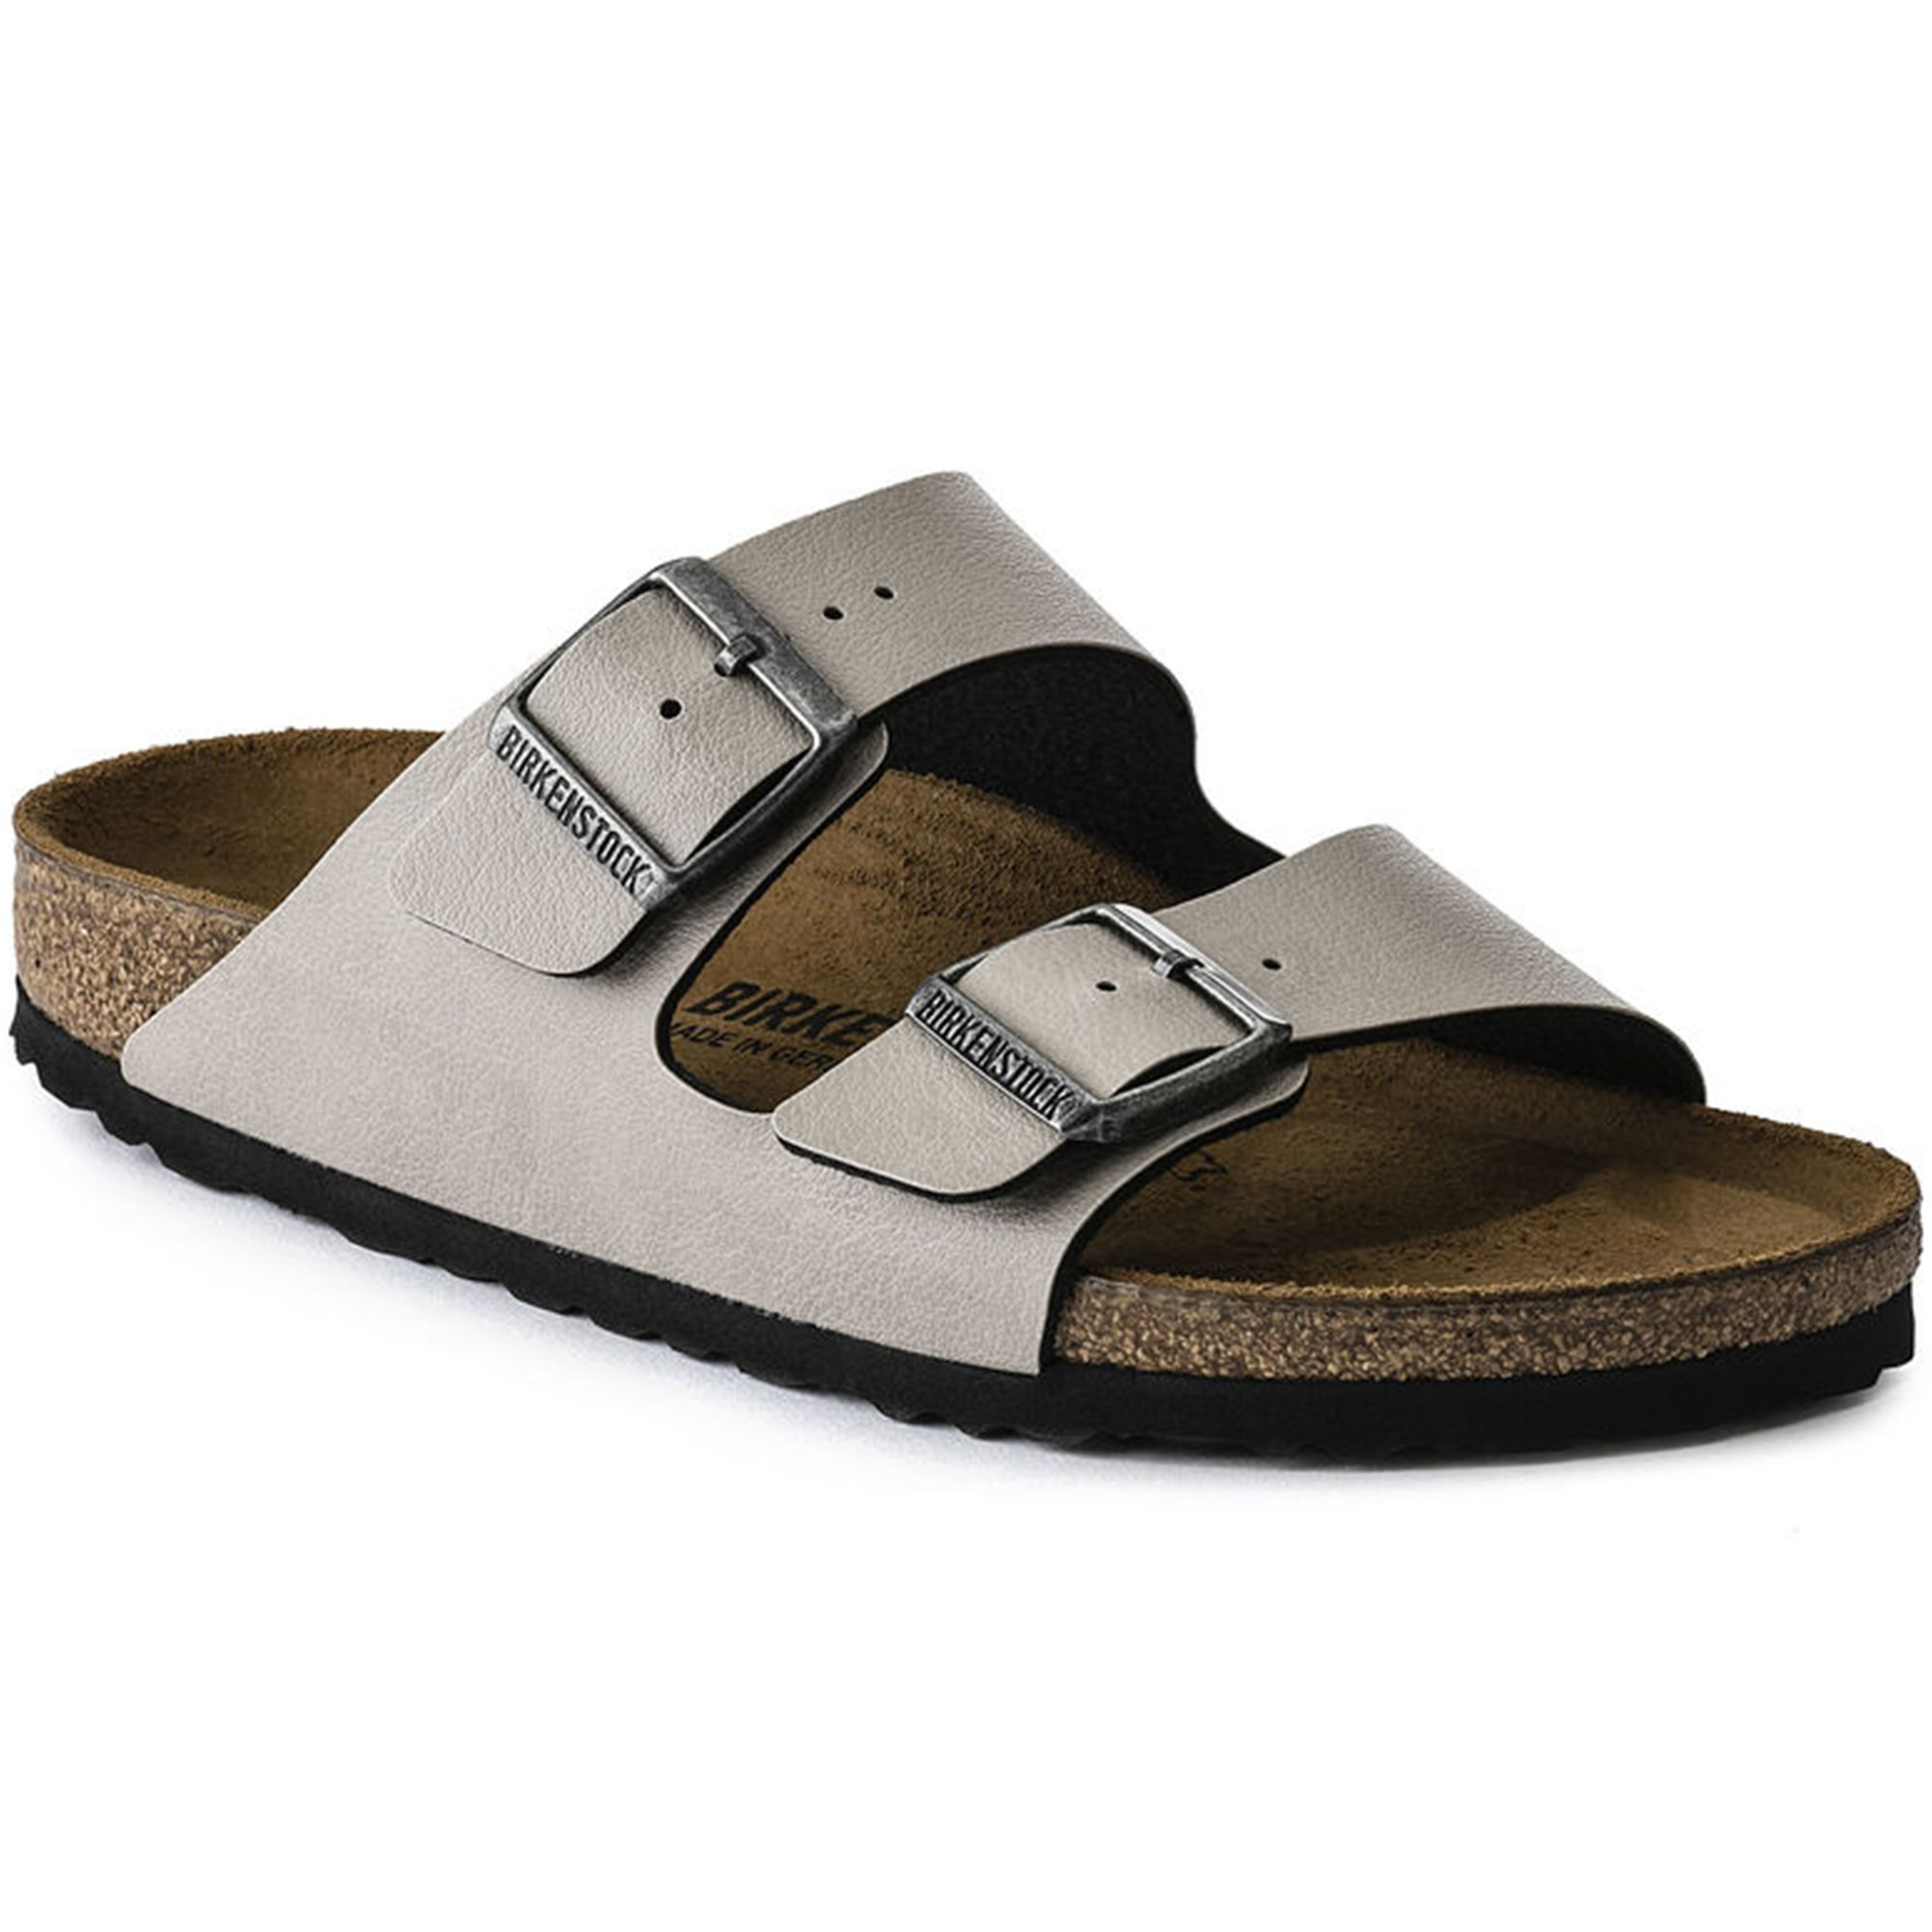 Birkenstock Women's Arizona  Birko-Flo Stone Birko-flor Pull Up Sandals - 41 M EU/10-10.5 B(M) US Women/8-8.5 B(M) US Men